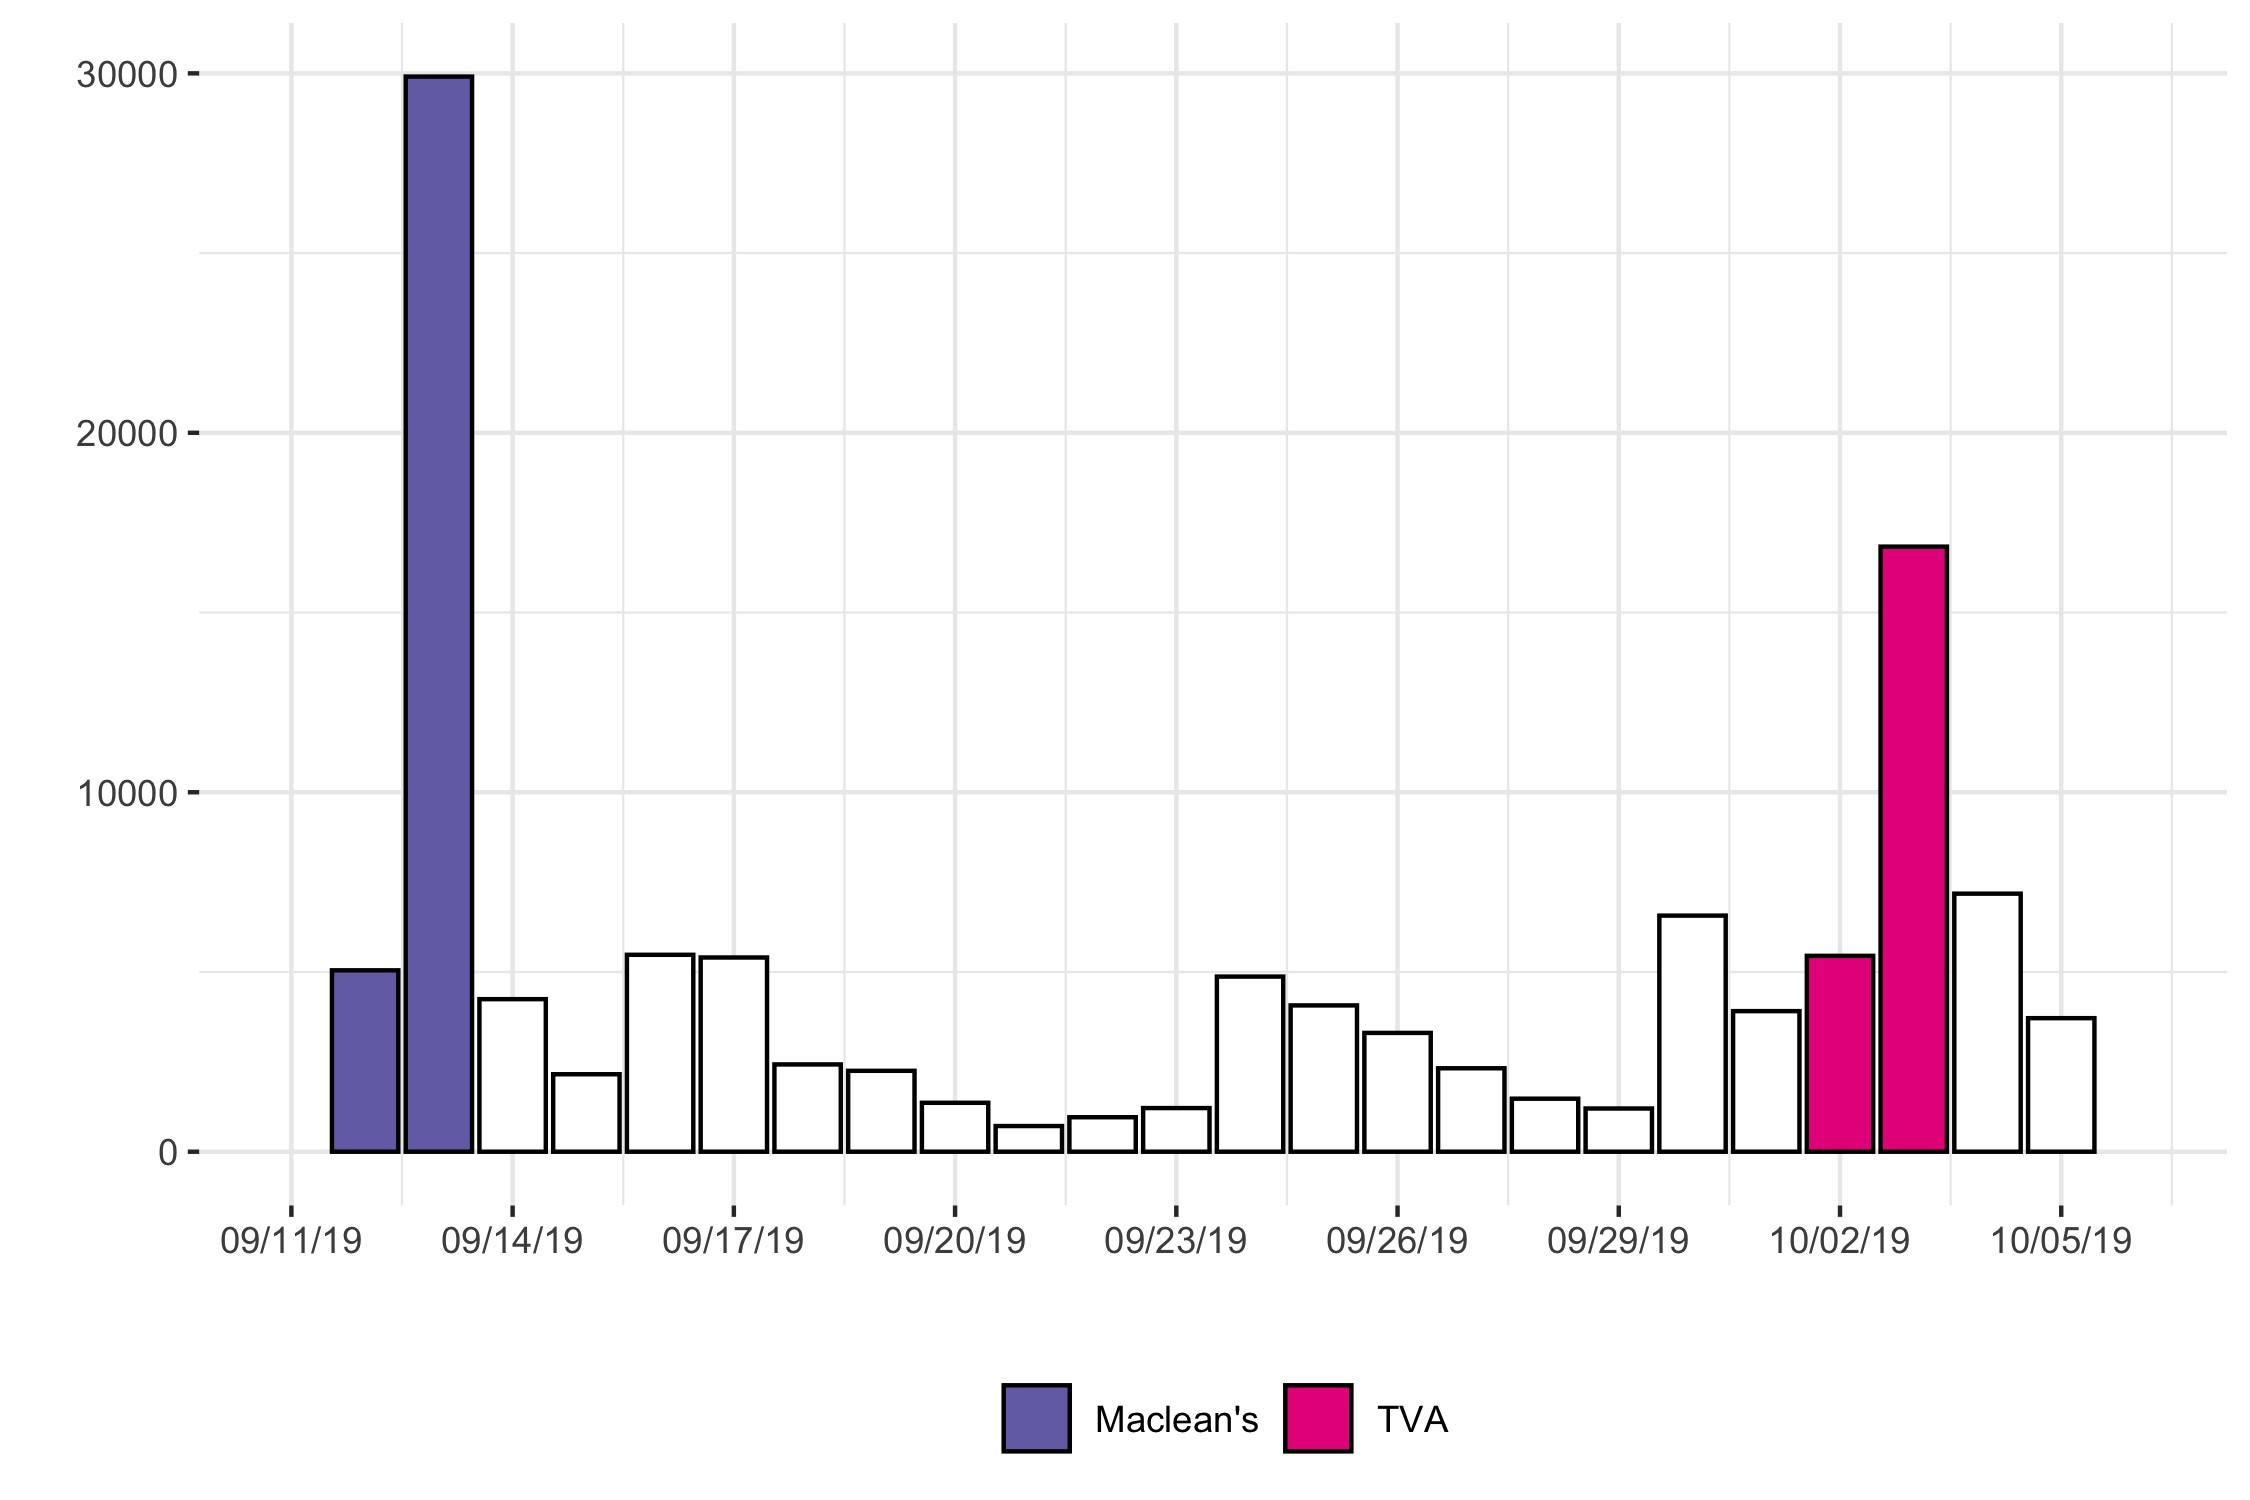 Figure 1: Debate-related Twitter activity prior to the Leaders' Debates Commission events